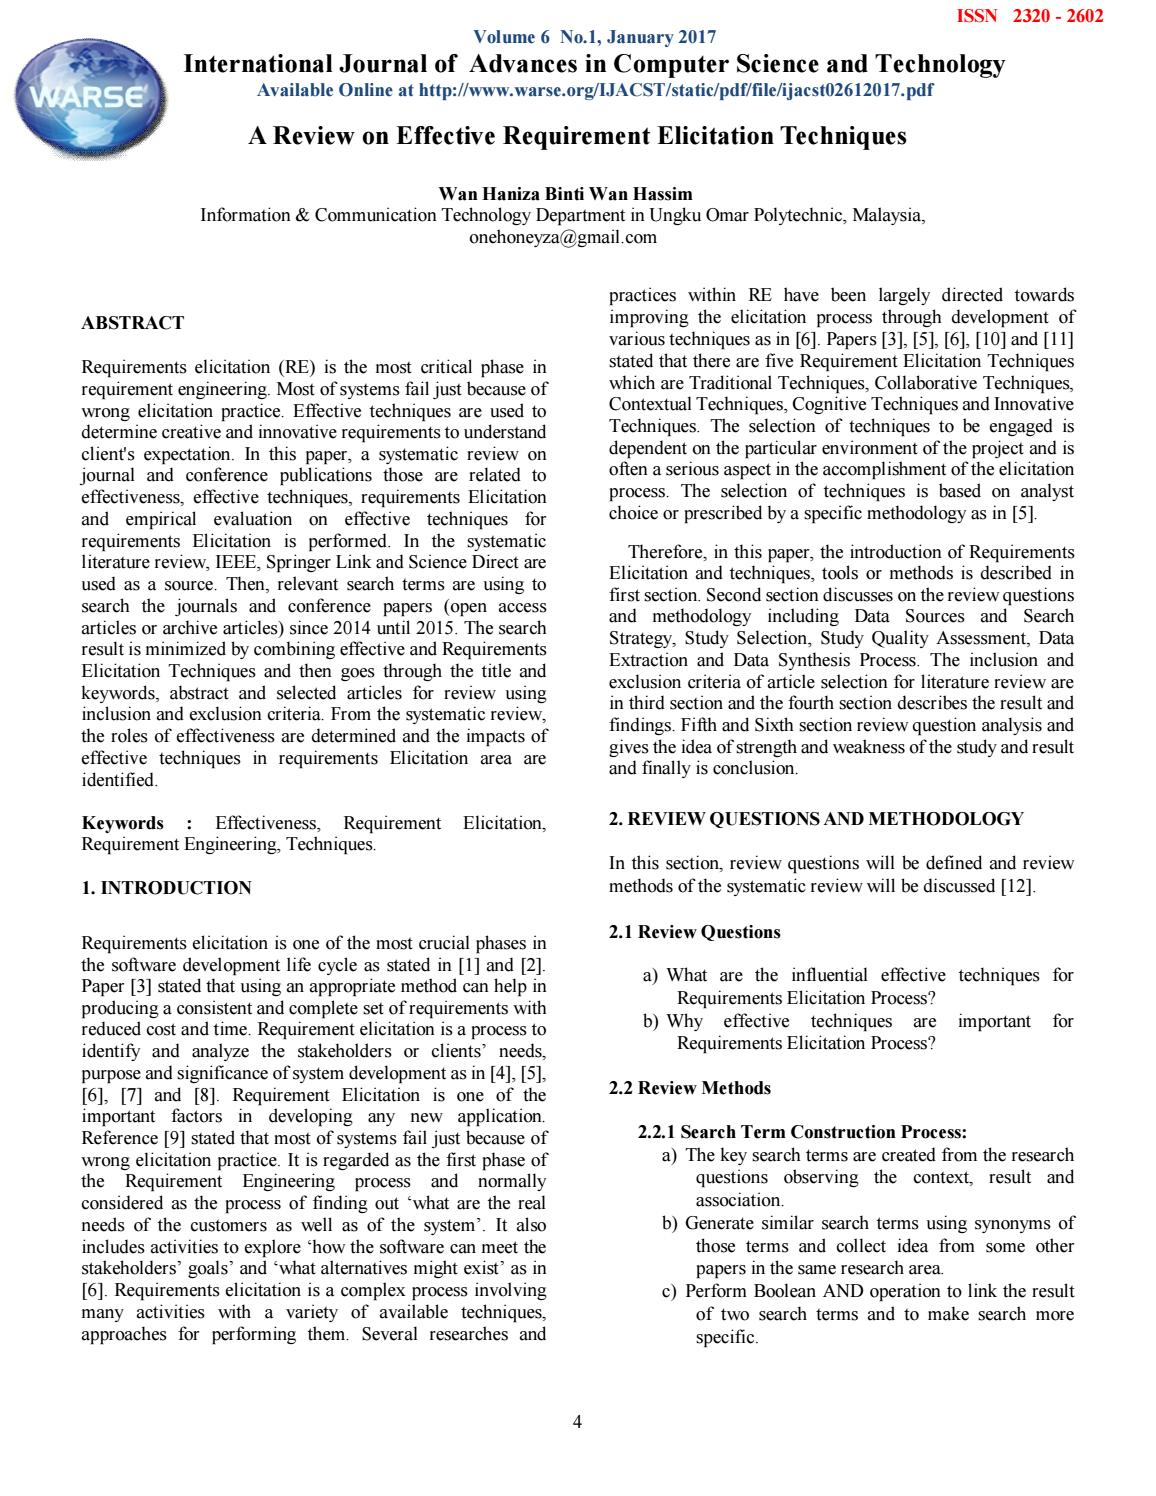 review on effective requirement elicitation techniques by the world academy of research in science and engineering issuu